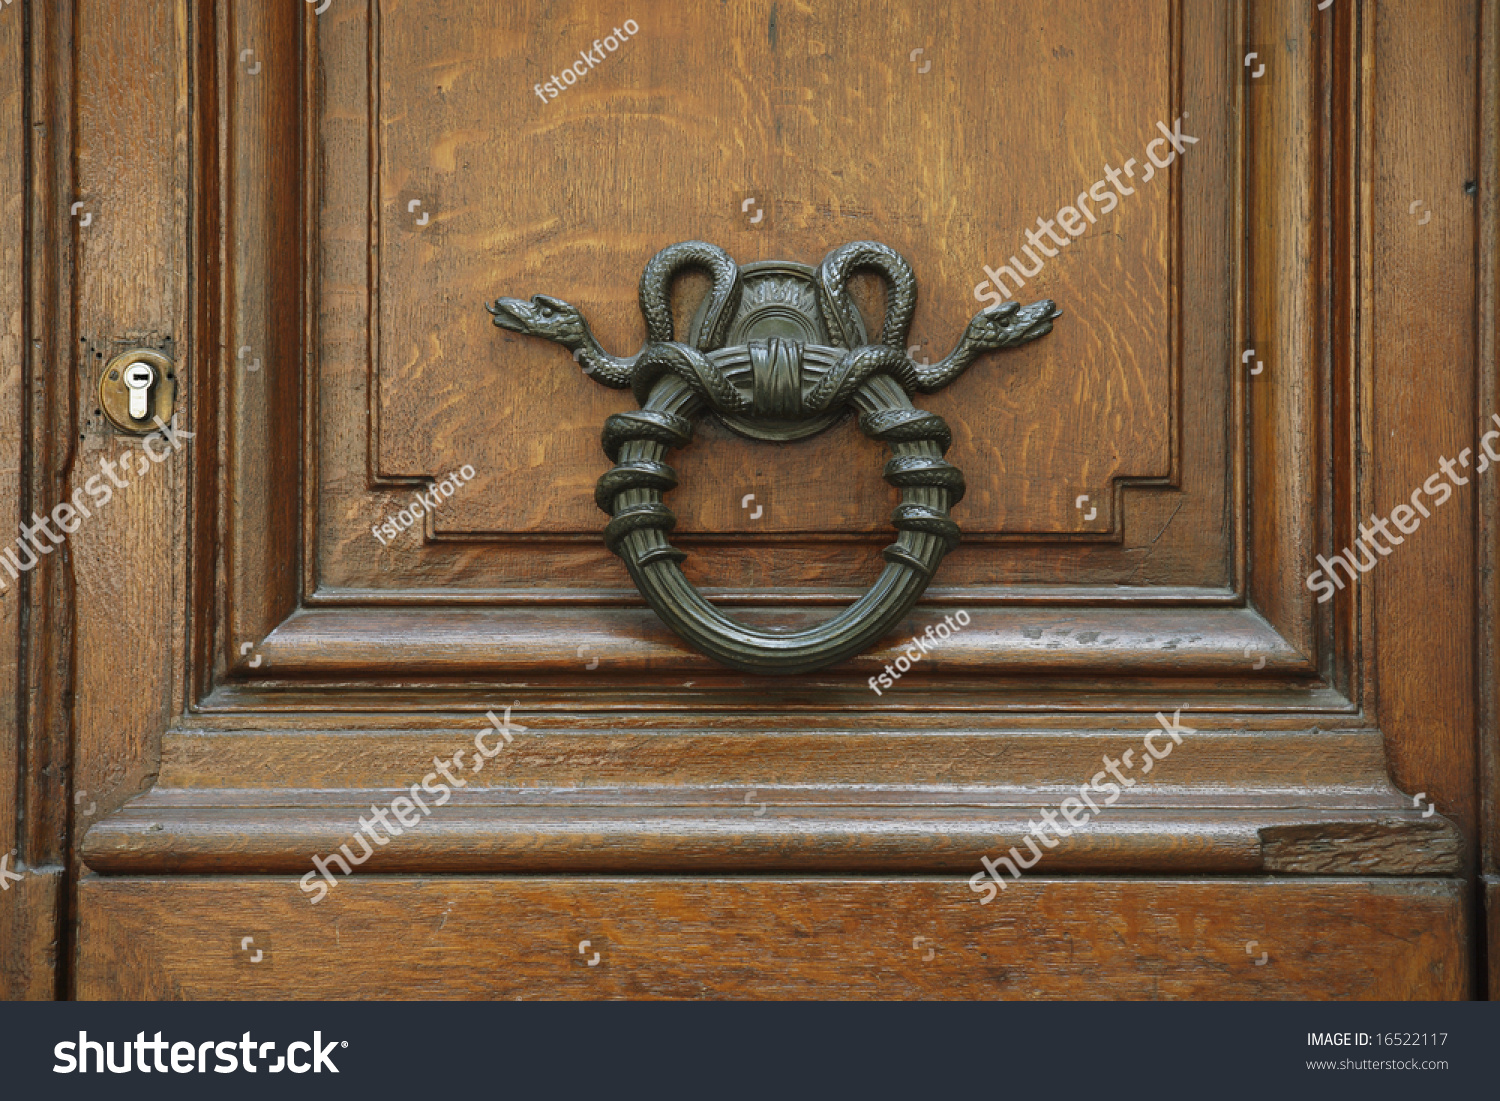 An Old World Style Door Knocker With Coiled Snakes France